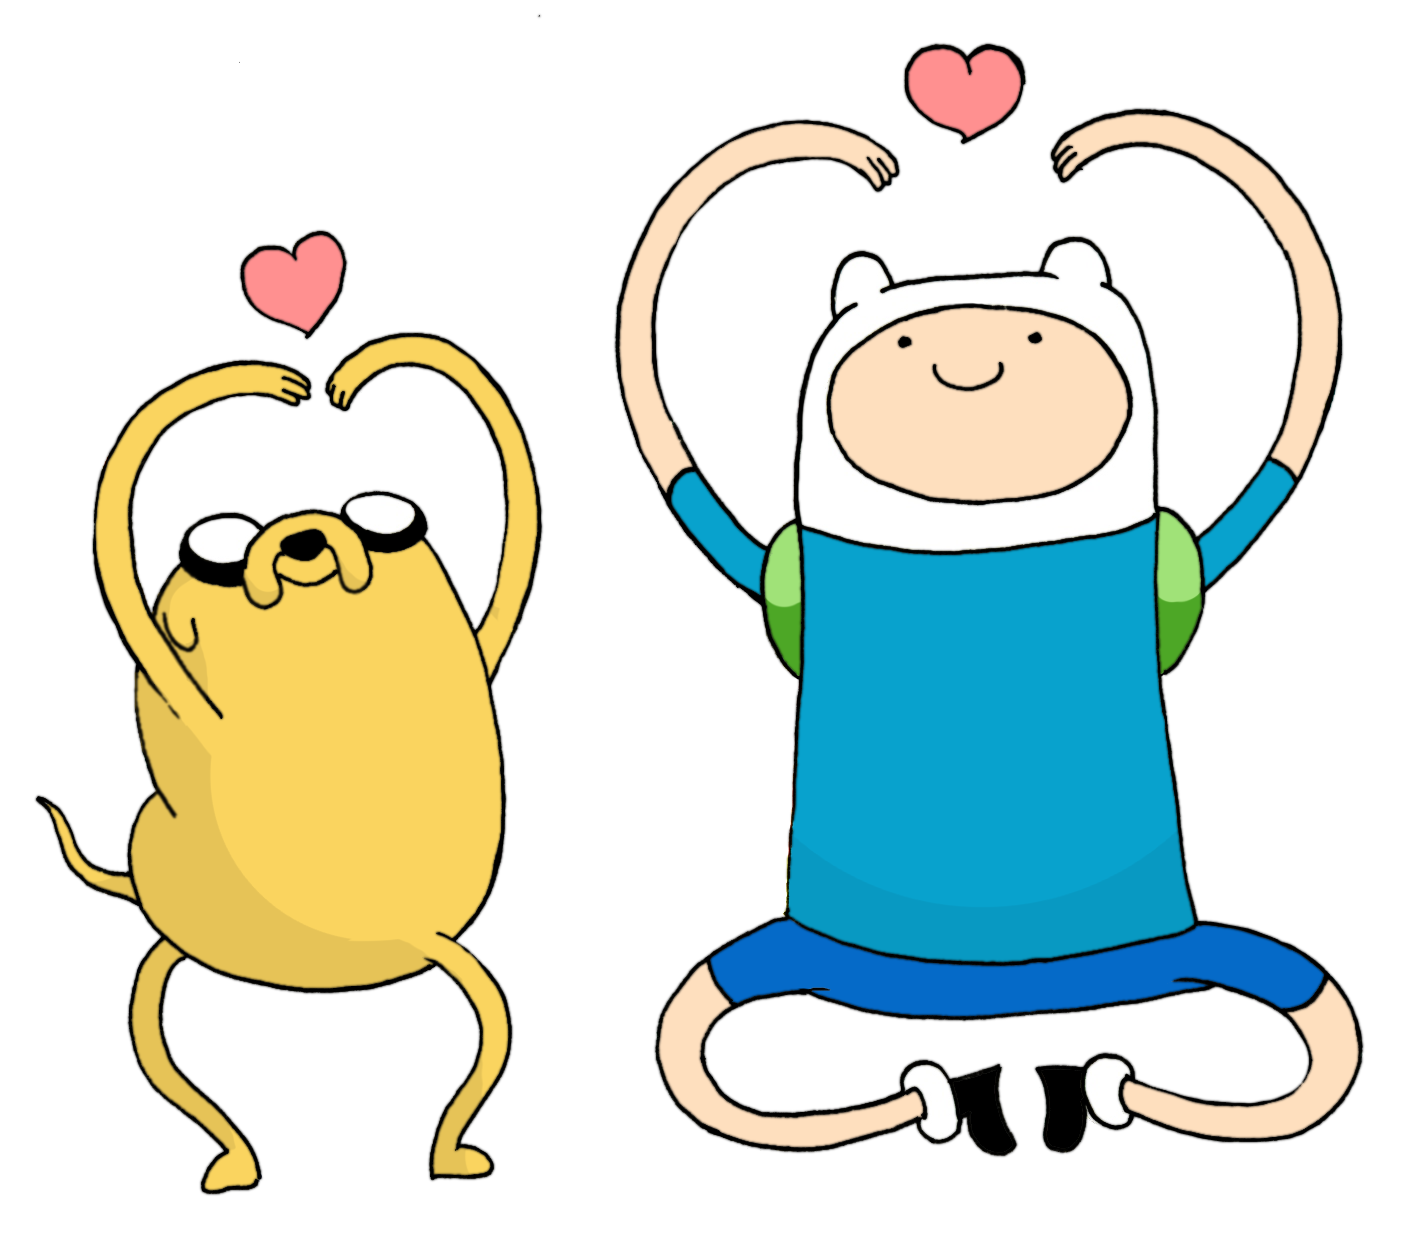 finn y jake by - photo #32